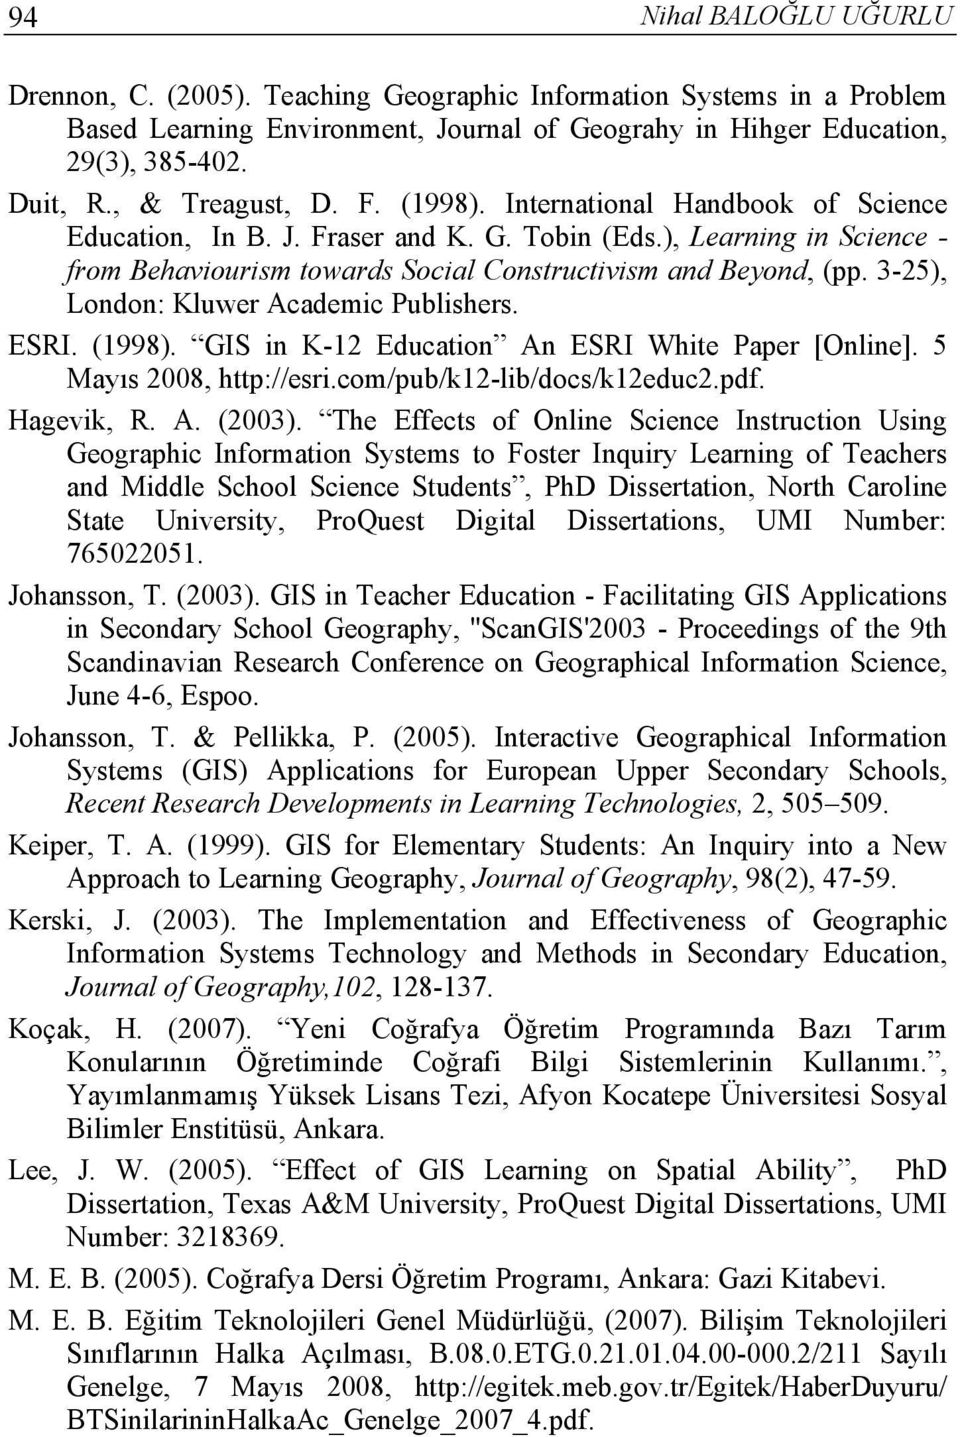 3-25), London: Kluwer Academic Publishers. ESRI. (1998). GIS in K-12 Education An ESRI White Paper [Online]. 5 Mayıs 2008, http://esri.com/pub/k12-lib/docs/k12educ2.pdf. Hagevik, R. A. (2003).